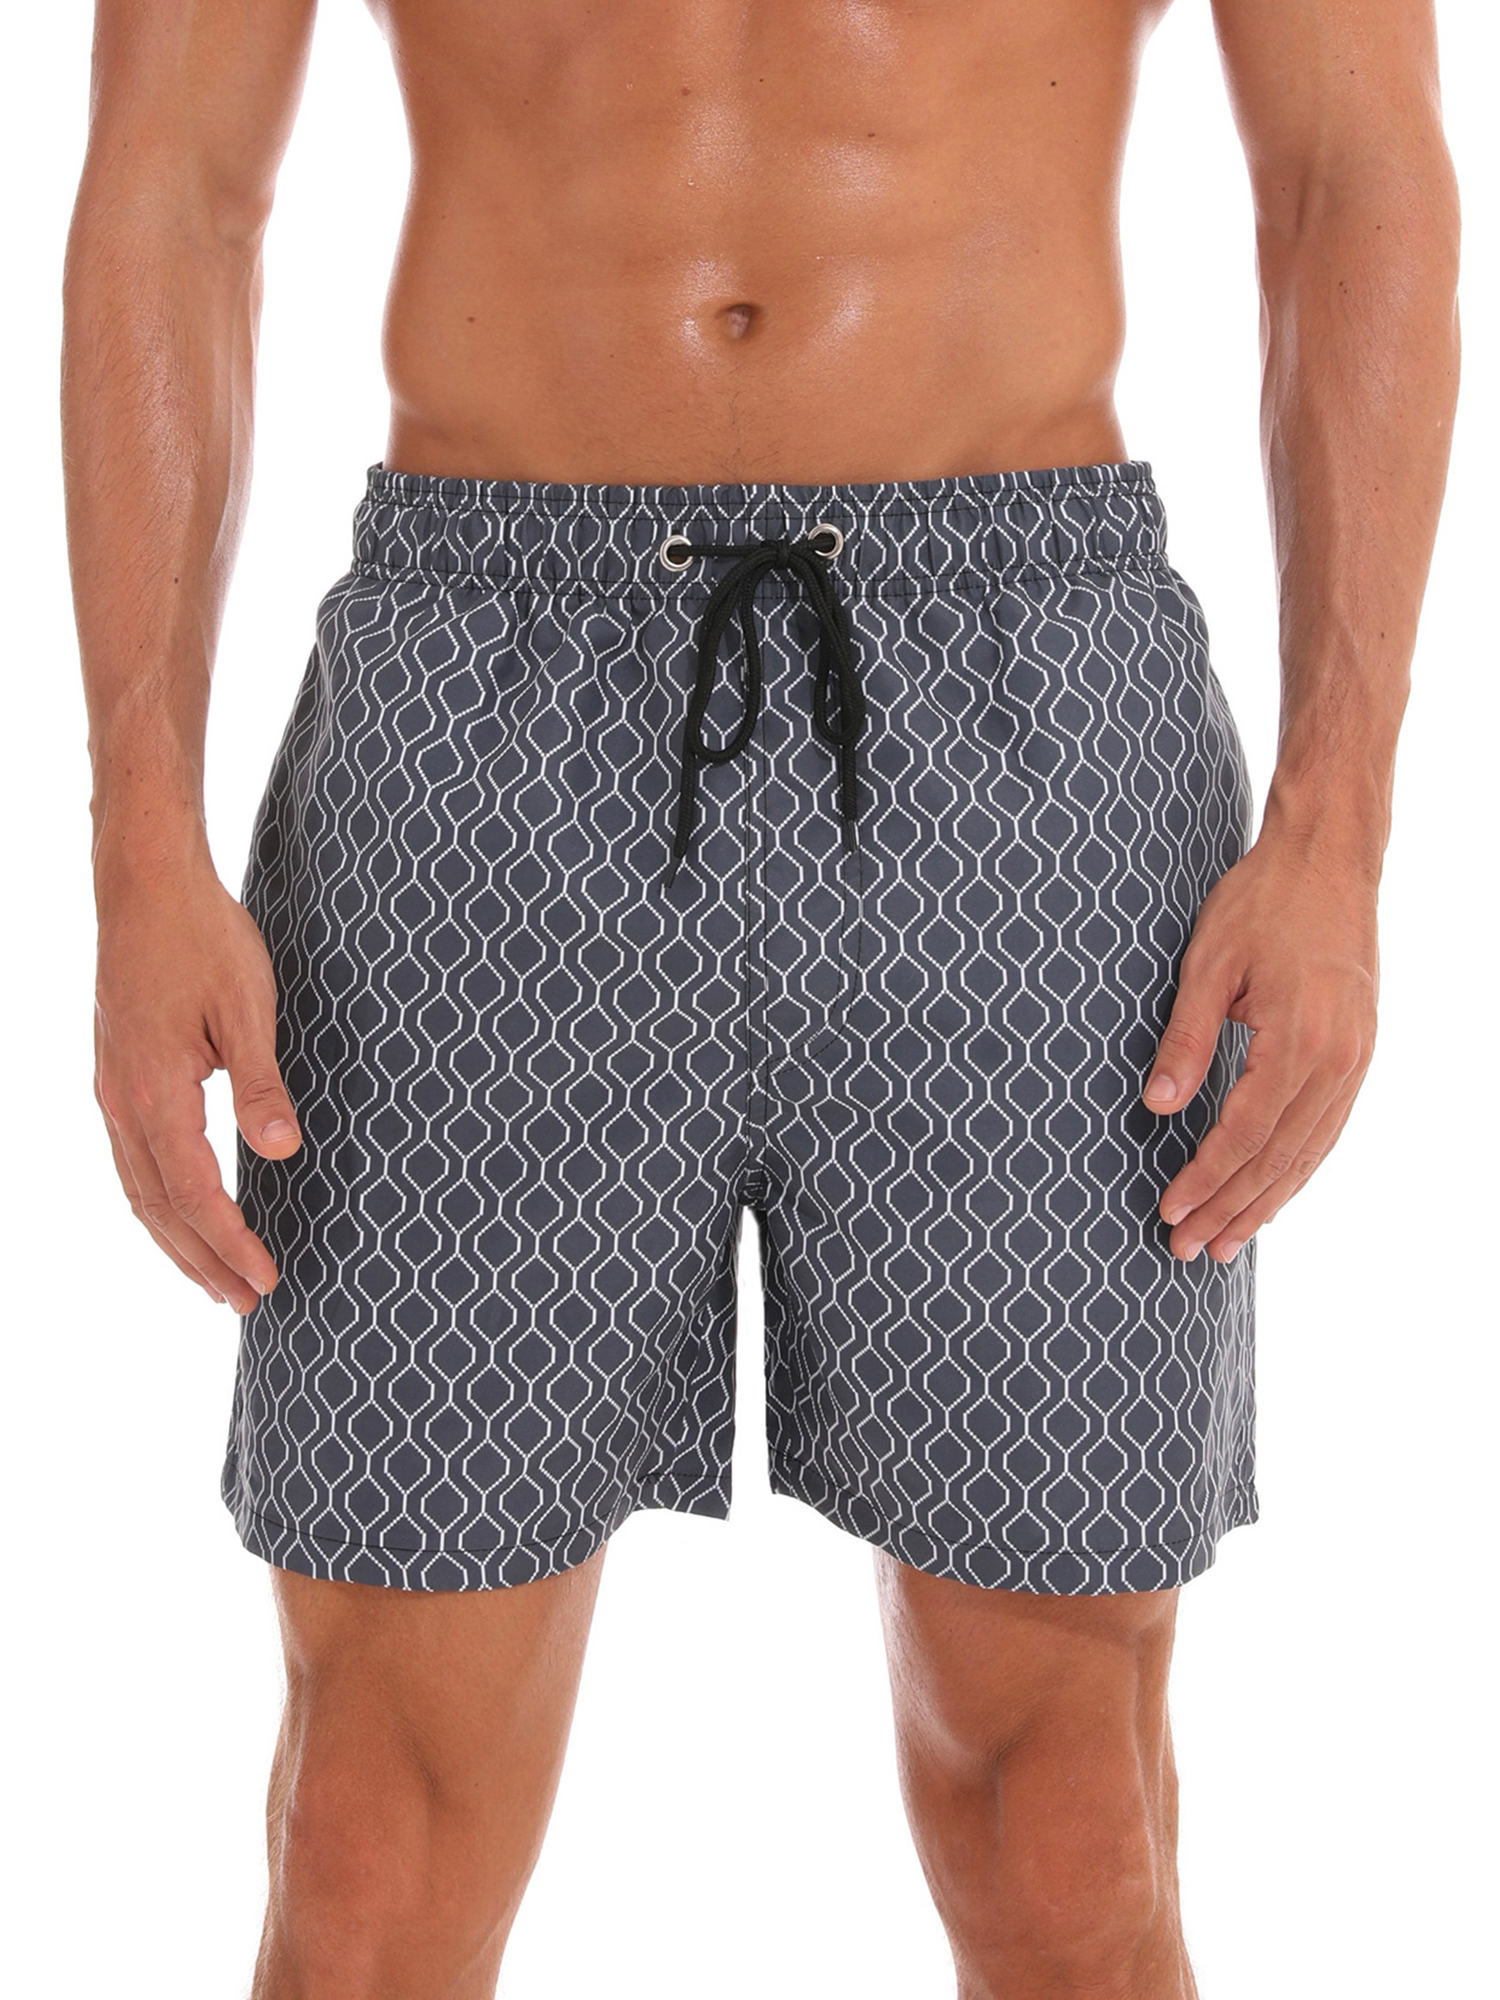 Beautiful Giant Boys Youth Boardshorts Quick Dry Waterproof Printed Swim Trunks